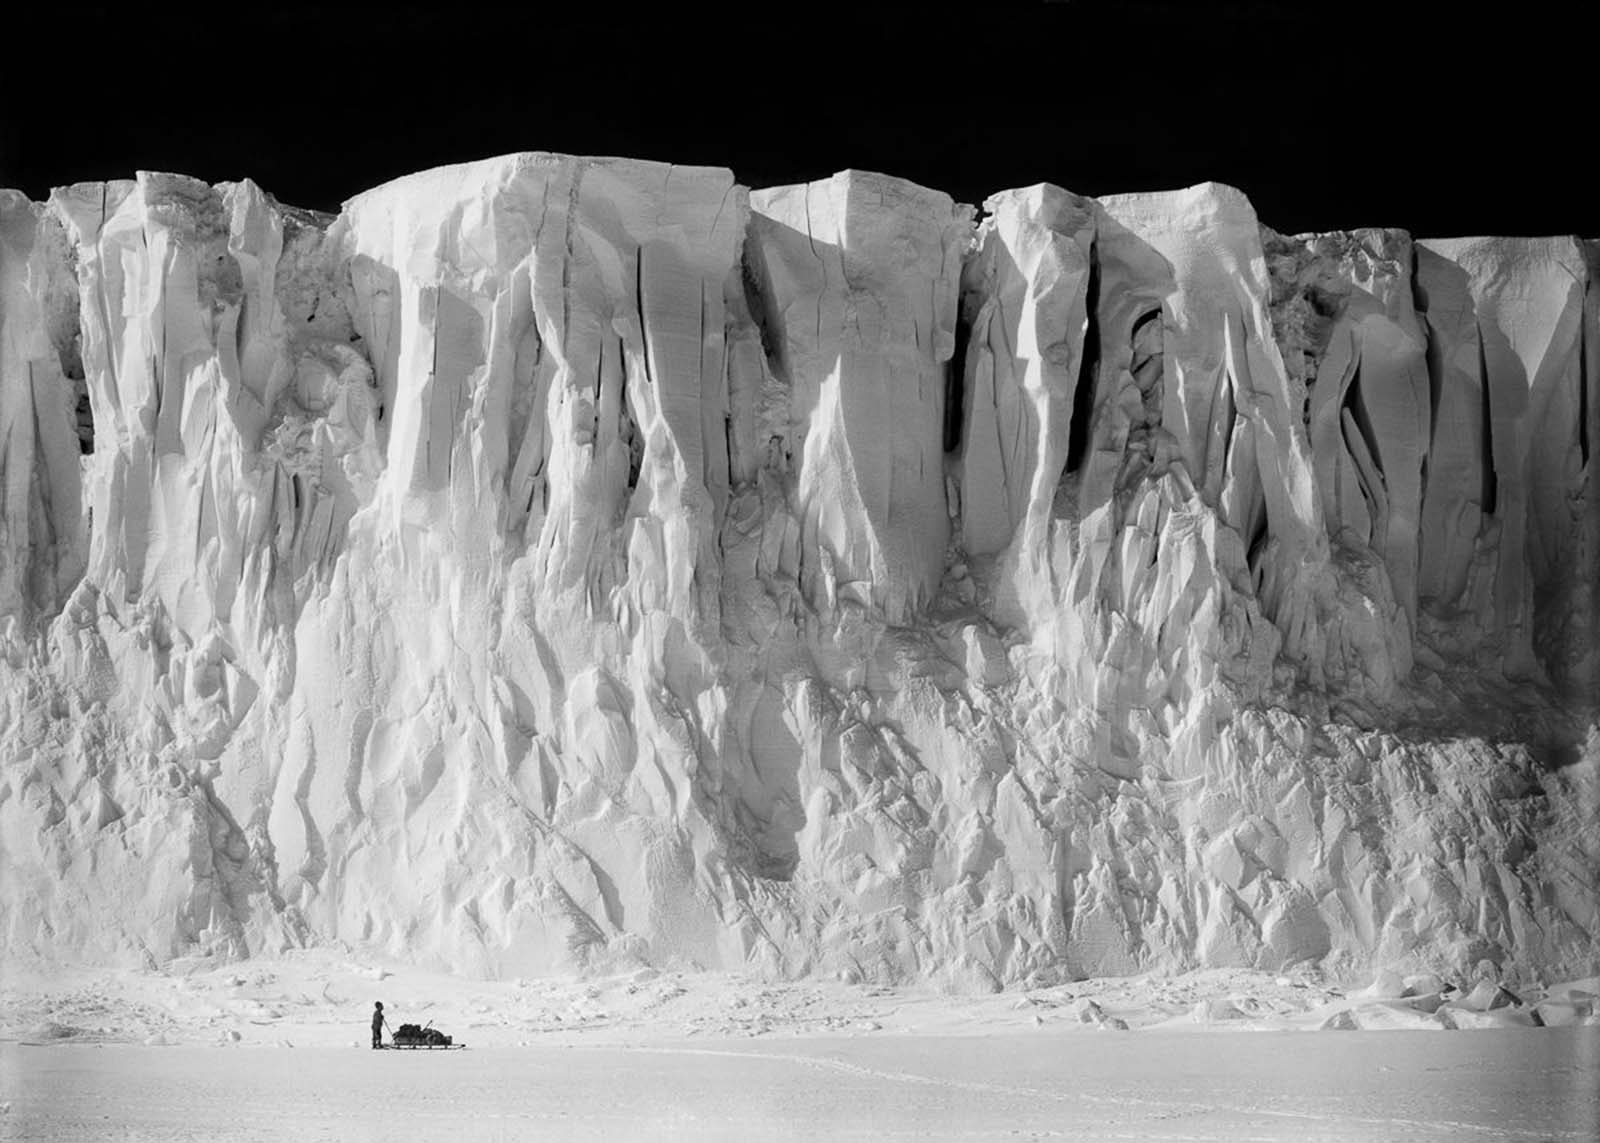 Anton Omelchenko stands at the end of the Barne Glacier on Ross Island. December 2, 1911.